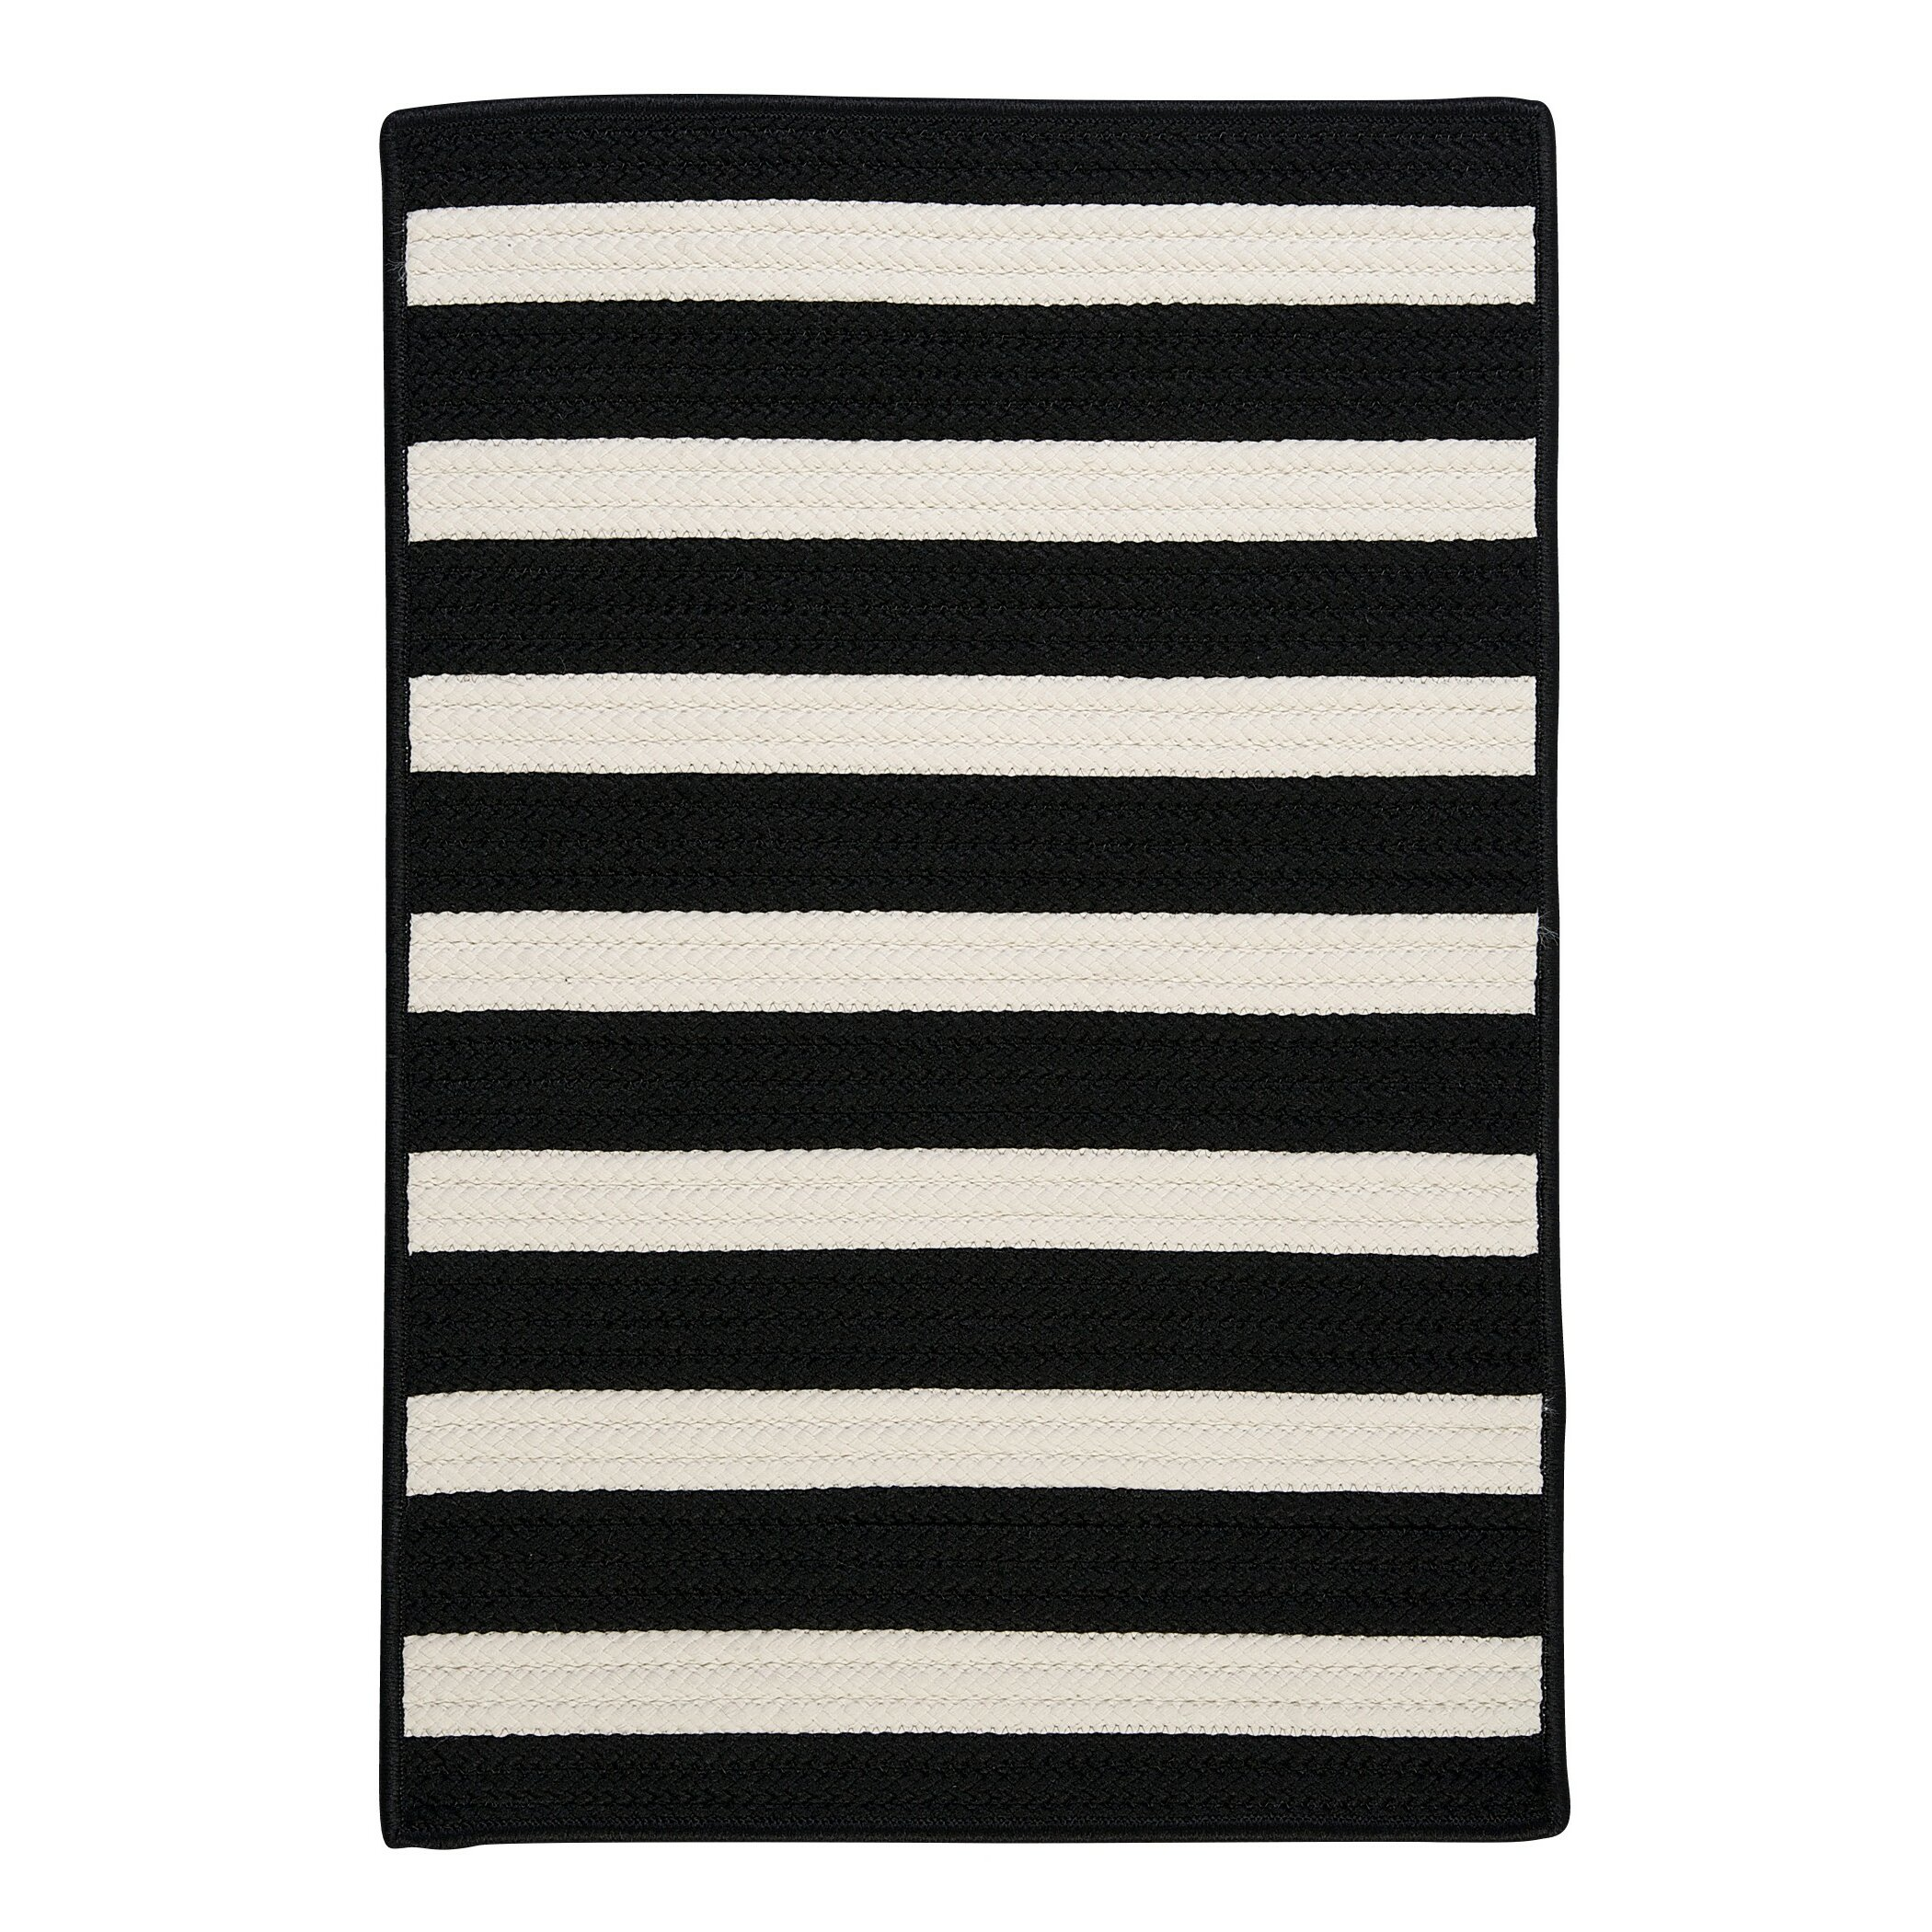 Superior Colonial Mills Stripe It Black/White Indoor/Outdoor Area Rug